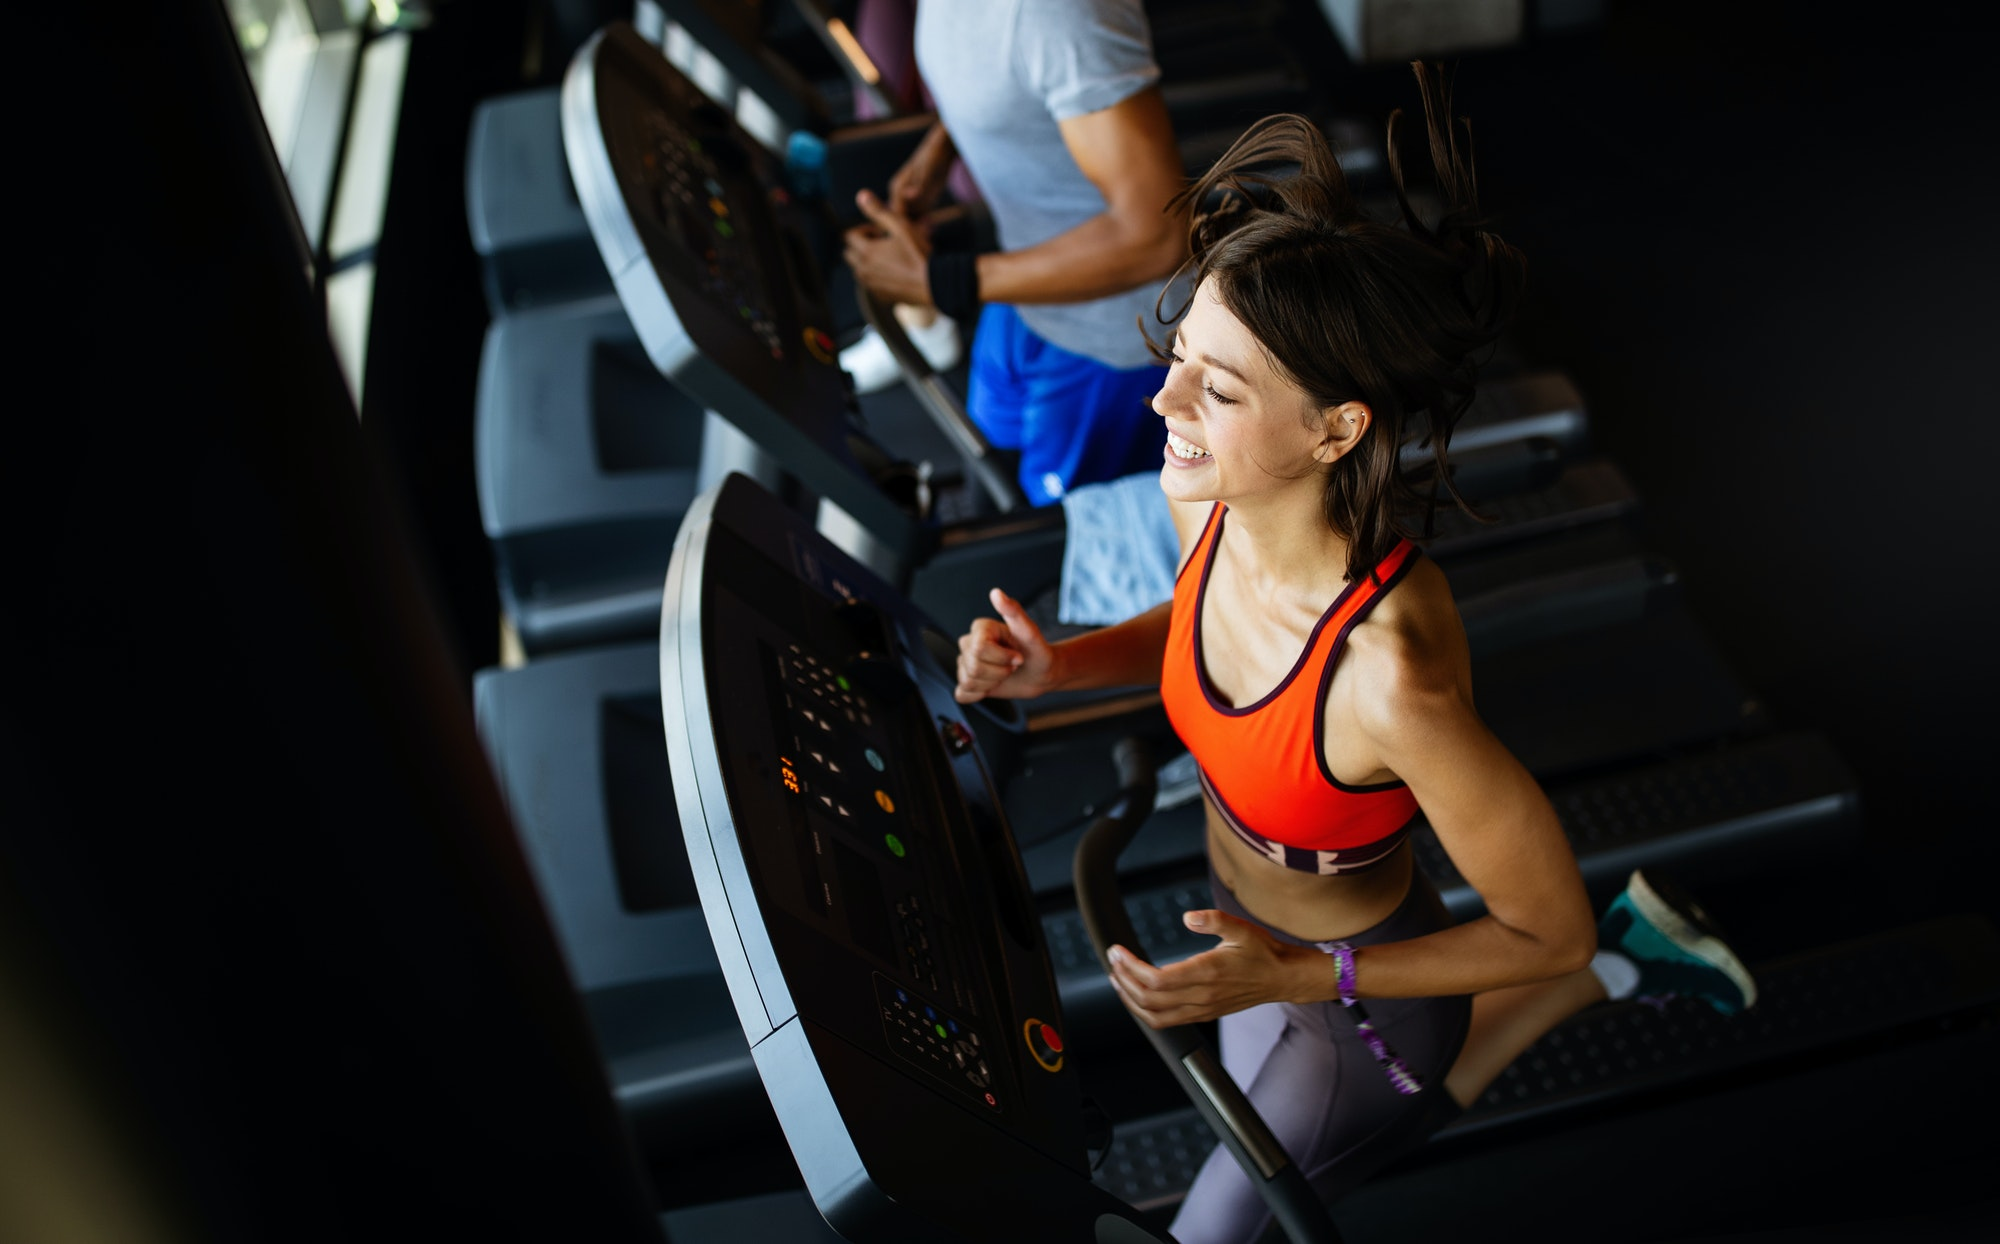 Fit group of people exercising on a treadmill in gym